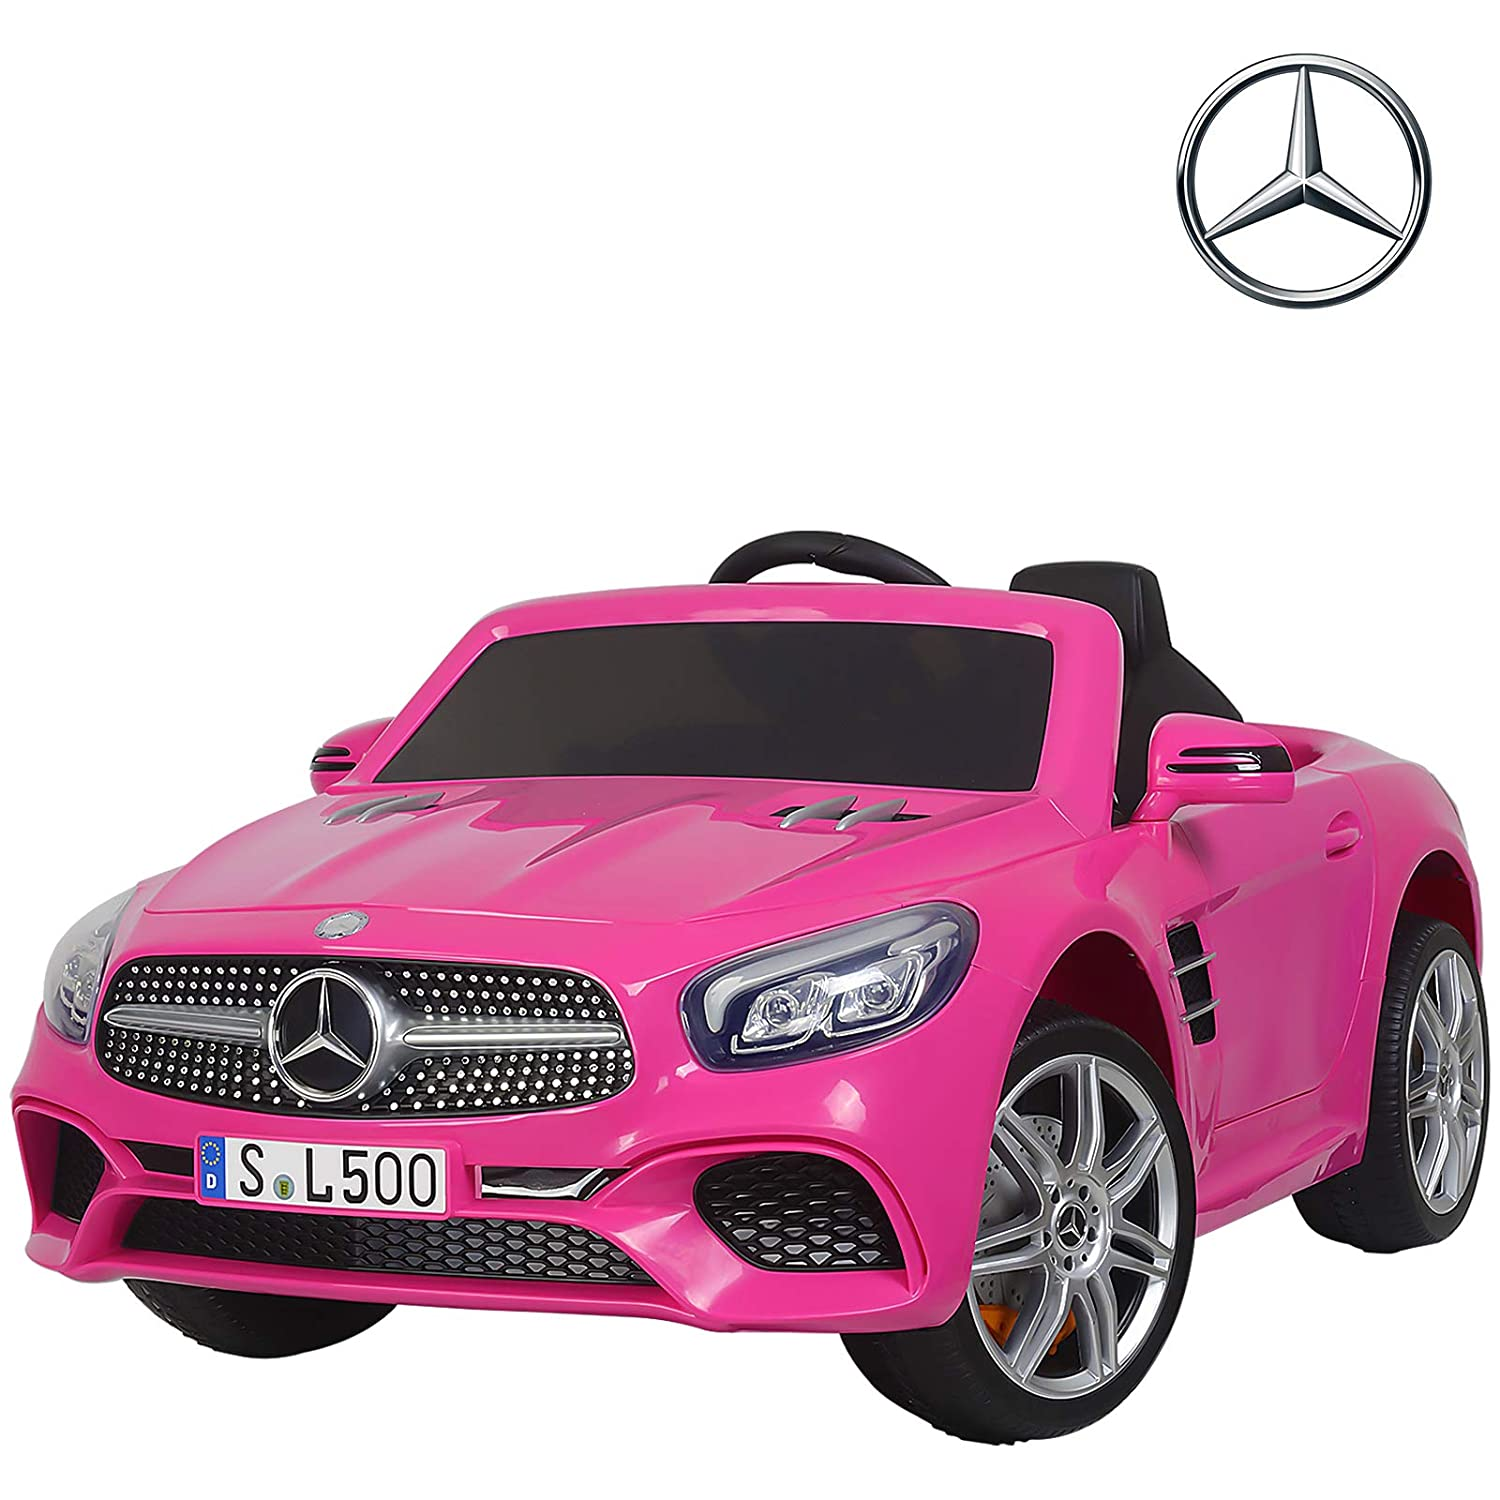 Cars For Kids >> Uenjoy 12v Licensed Mercedes Benz Sl500 Kids Ride On Car Electric Cars Motorized Vehicles For Girls With Remote Control Music Horn Spring